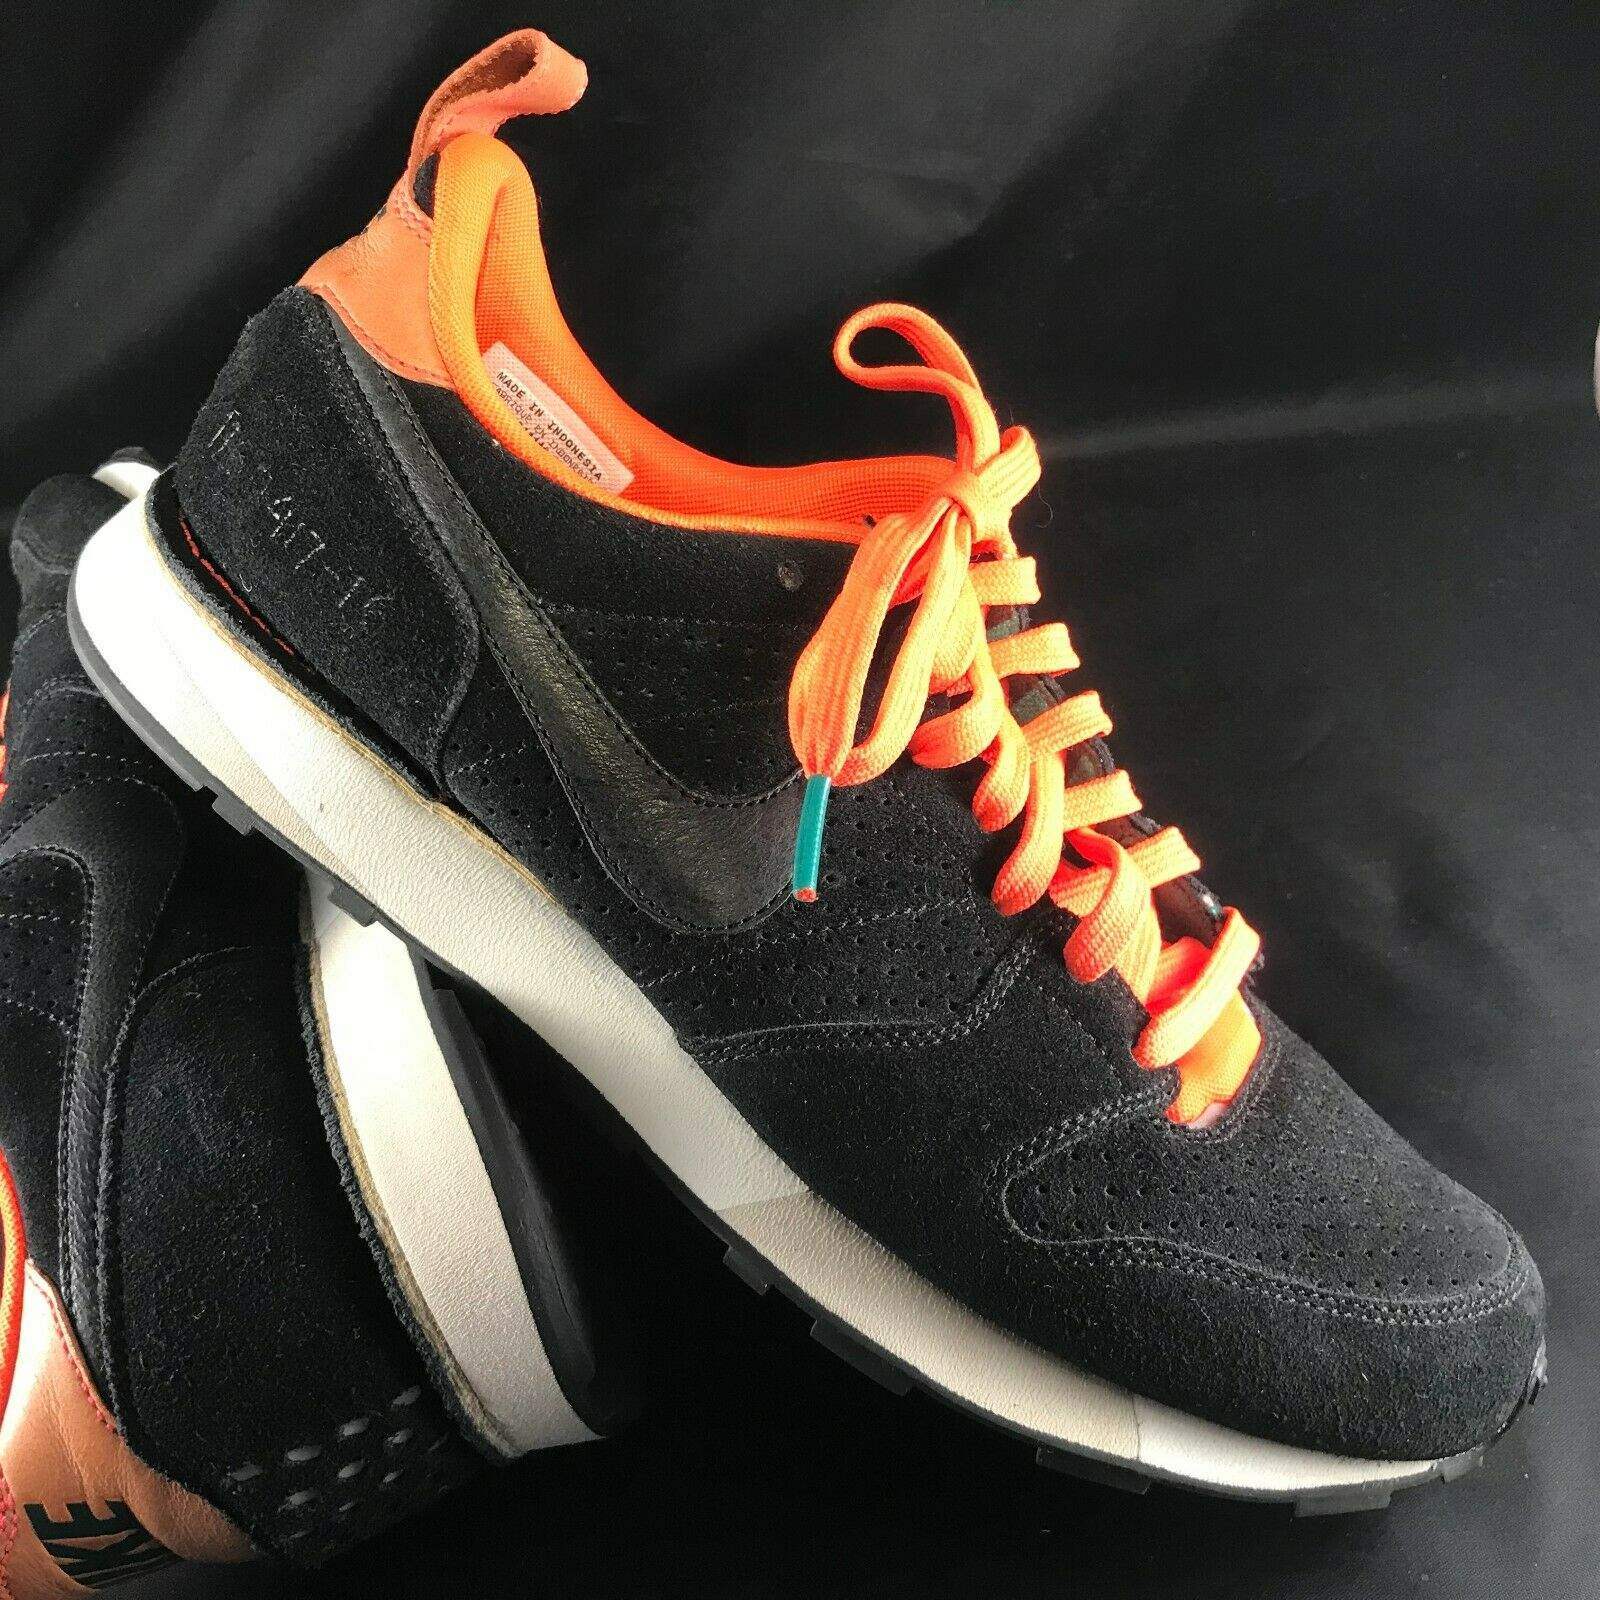 NIKE Waffle Trainer SAMPLE Black Suede Uppers Bright Crimson Trim Trim Trim Mens 9 US 42.5 d1110a